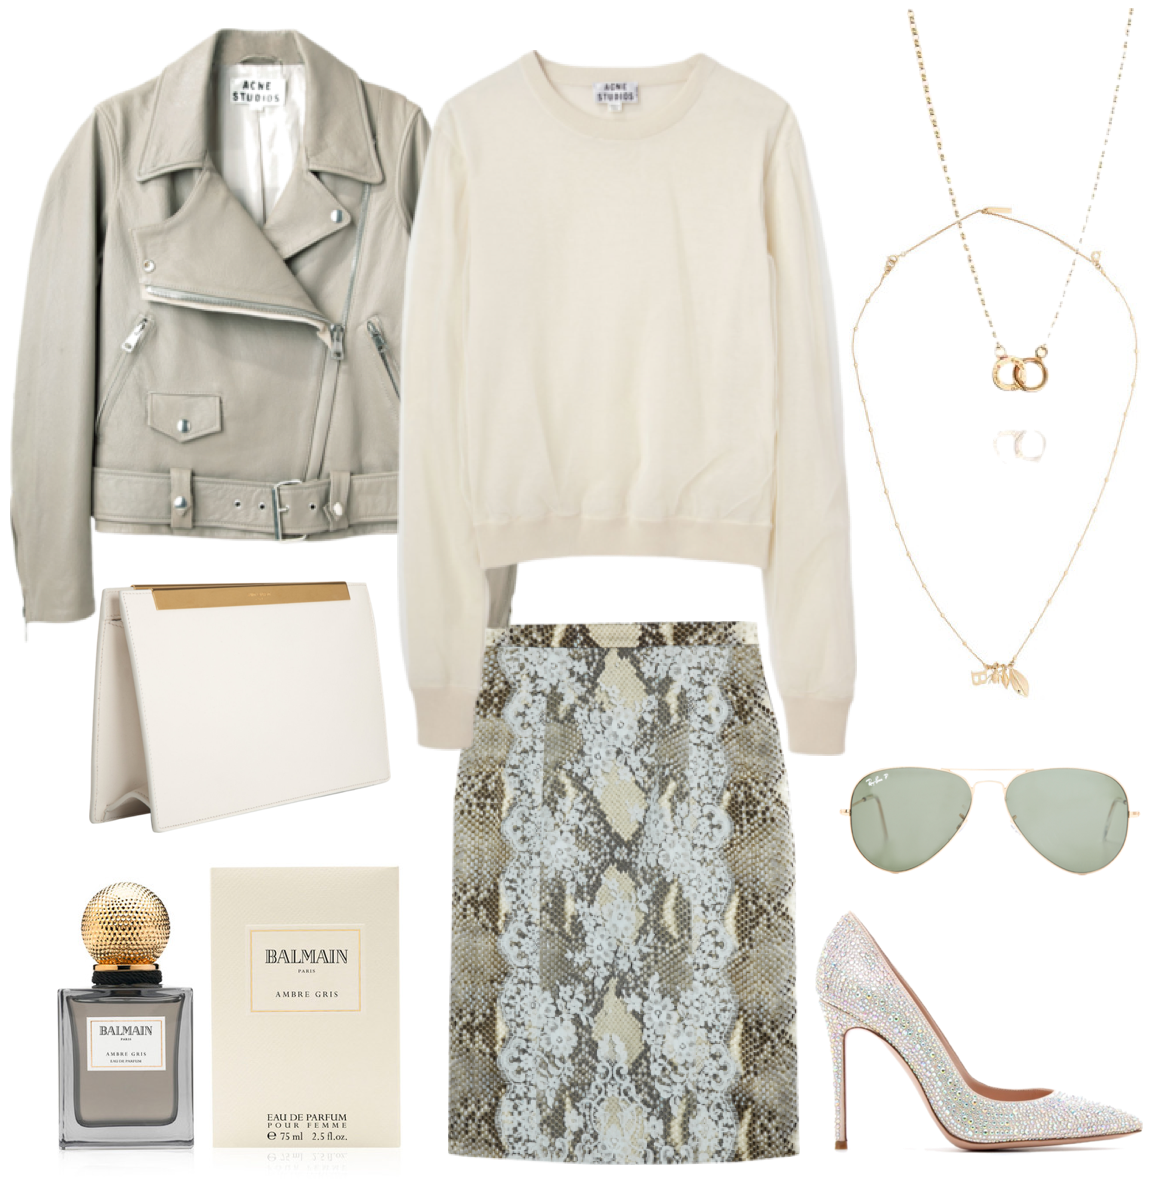 White look - Acne, Gianvito Rossi, Saint Laurent, Balmain, Efva Attling, Balenciaga, Ray-Ban, Erdem